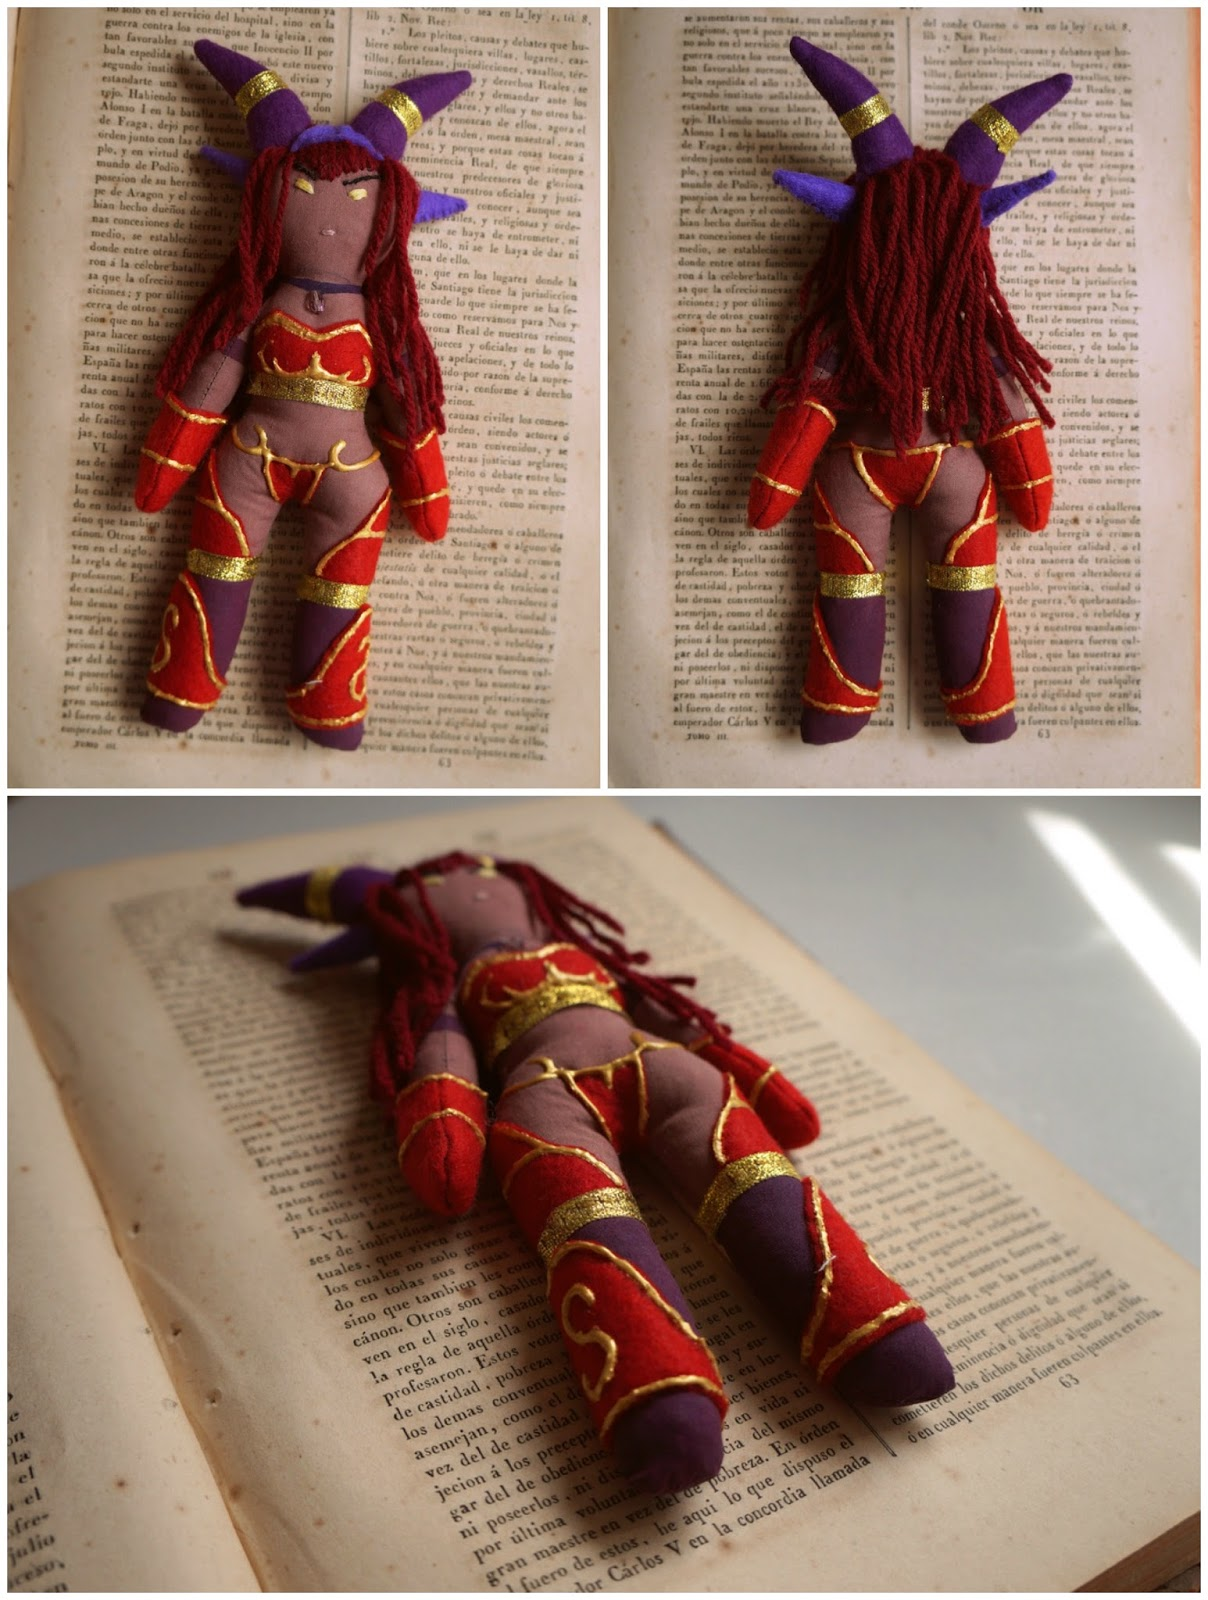 Muñeca personalizada de Alextrasza, World of Warcraft.